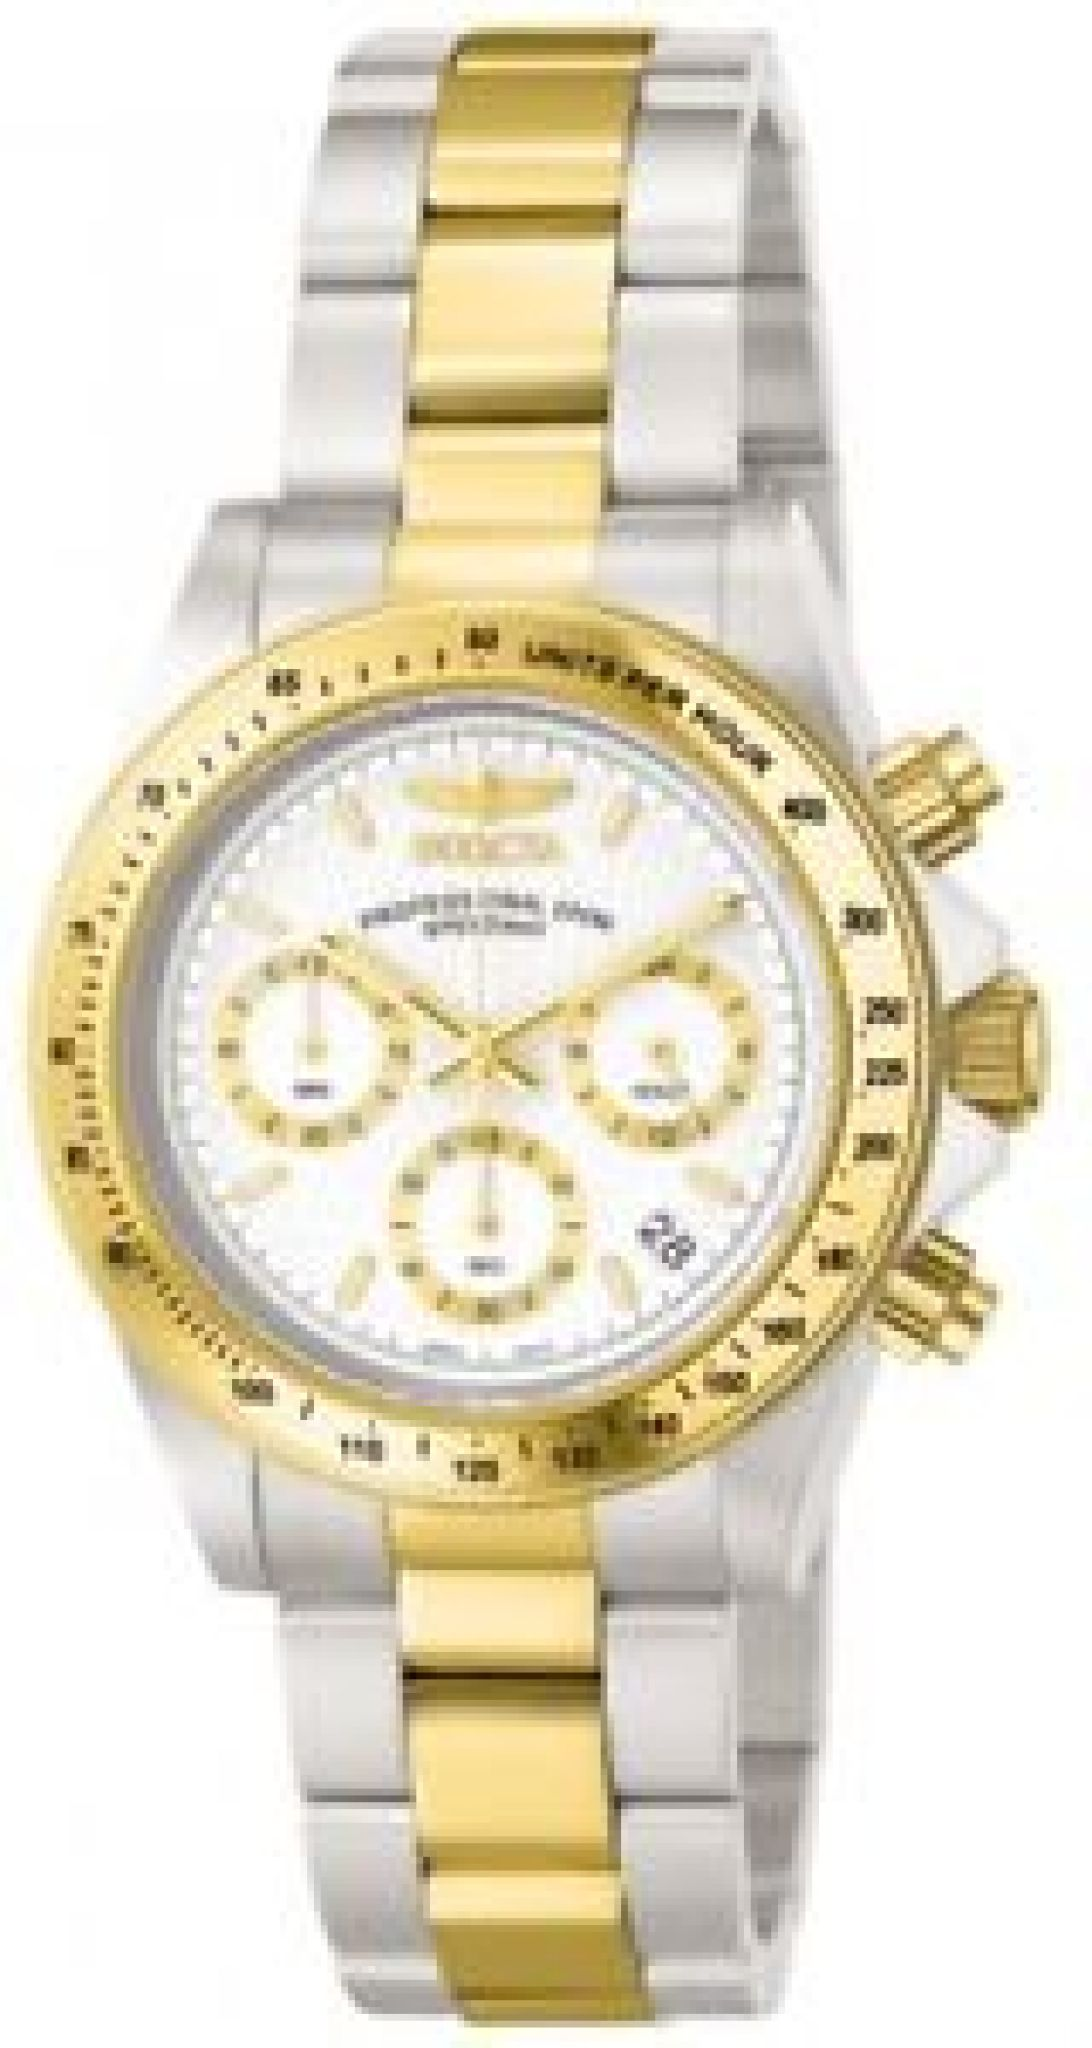 Invicta 9212 Men's Speedway White Dial Chronograph Watch | eBay